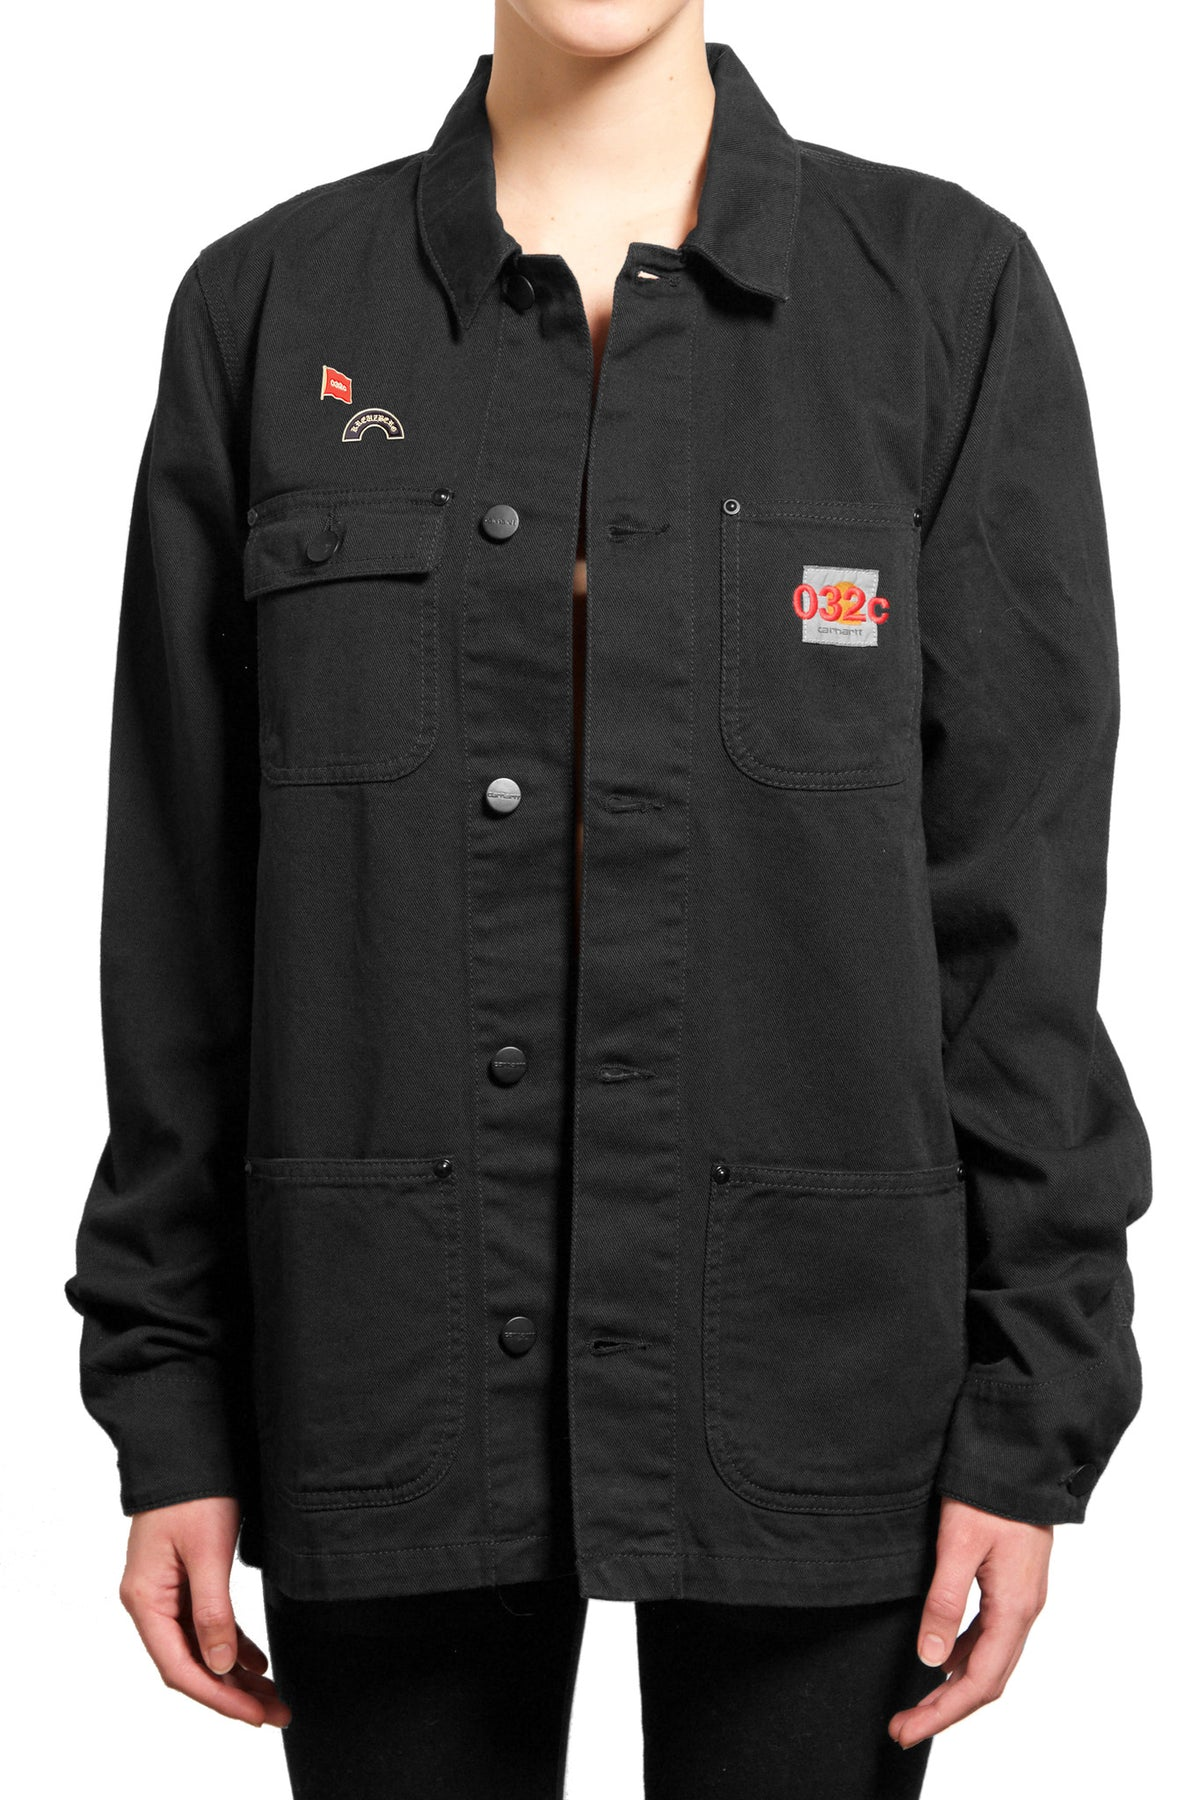 "032c ""EDITED CARHARTT JACKET"" Black - 032c"